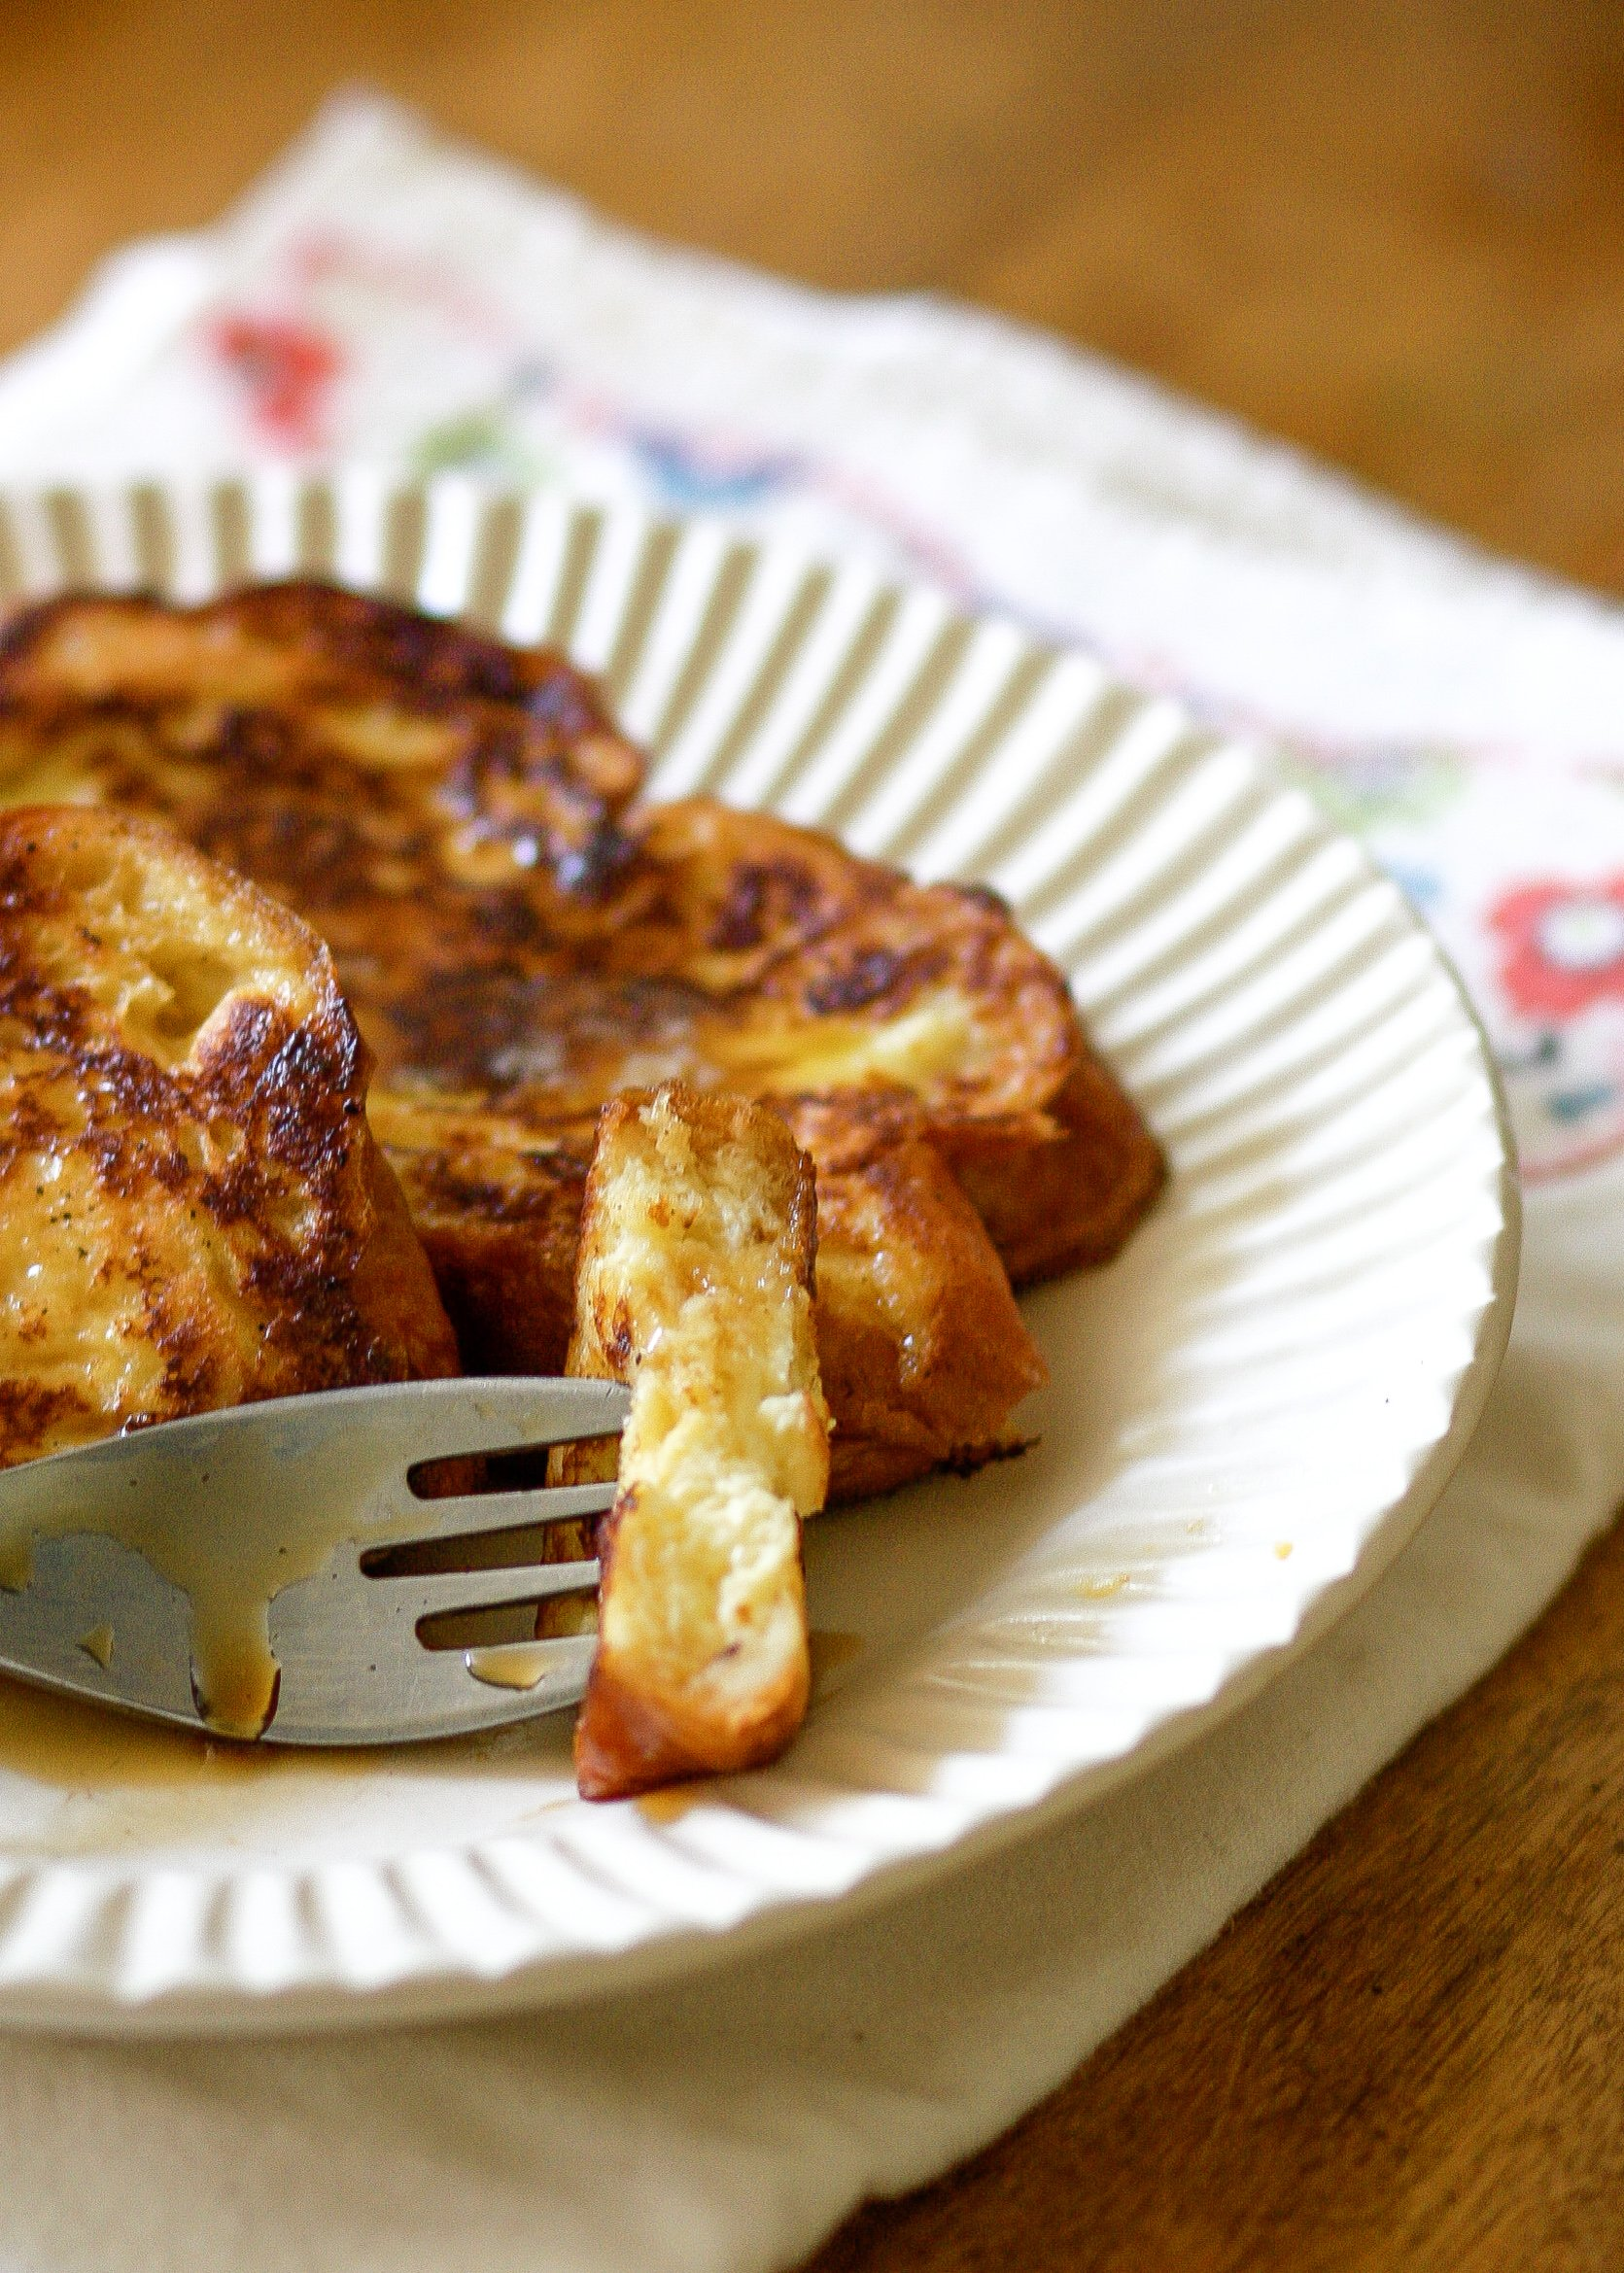 How To Make Great French Toast at Home | Kitchn